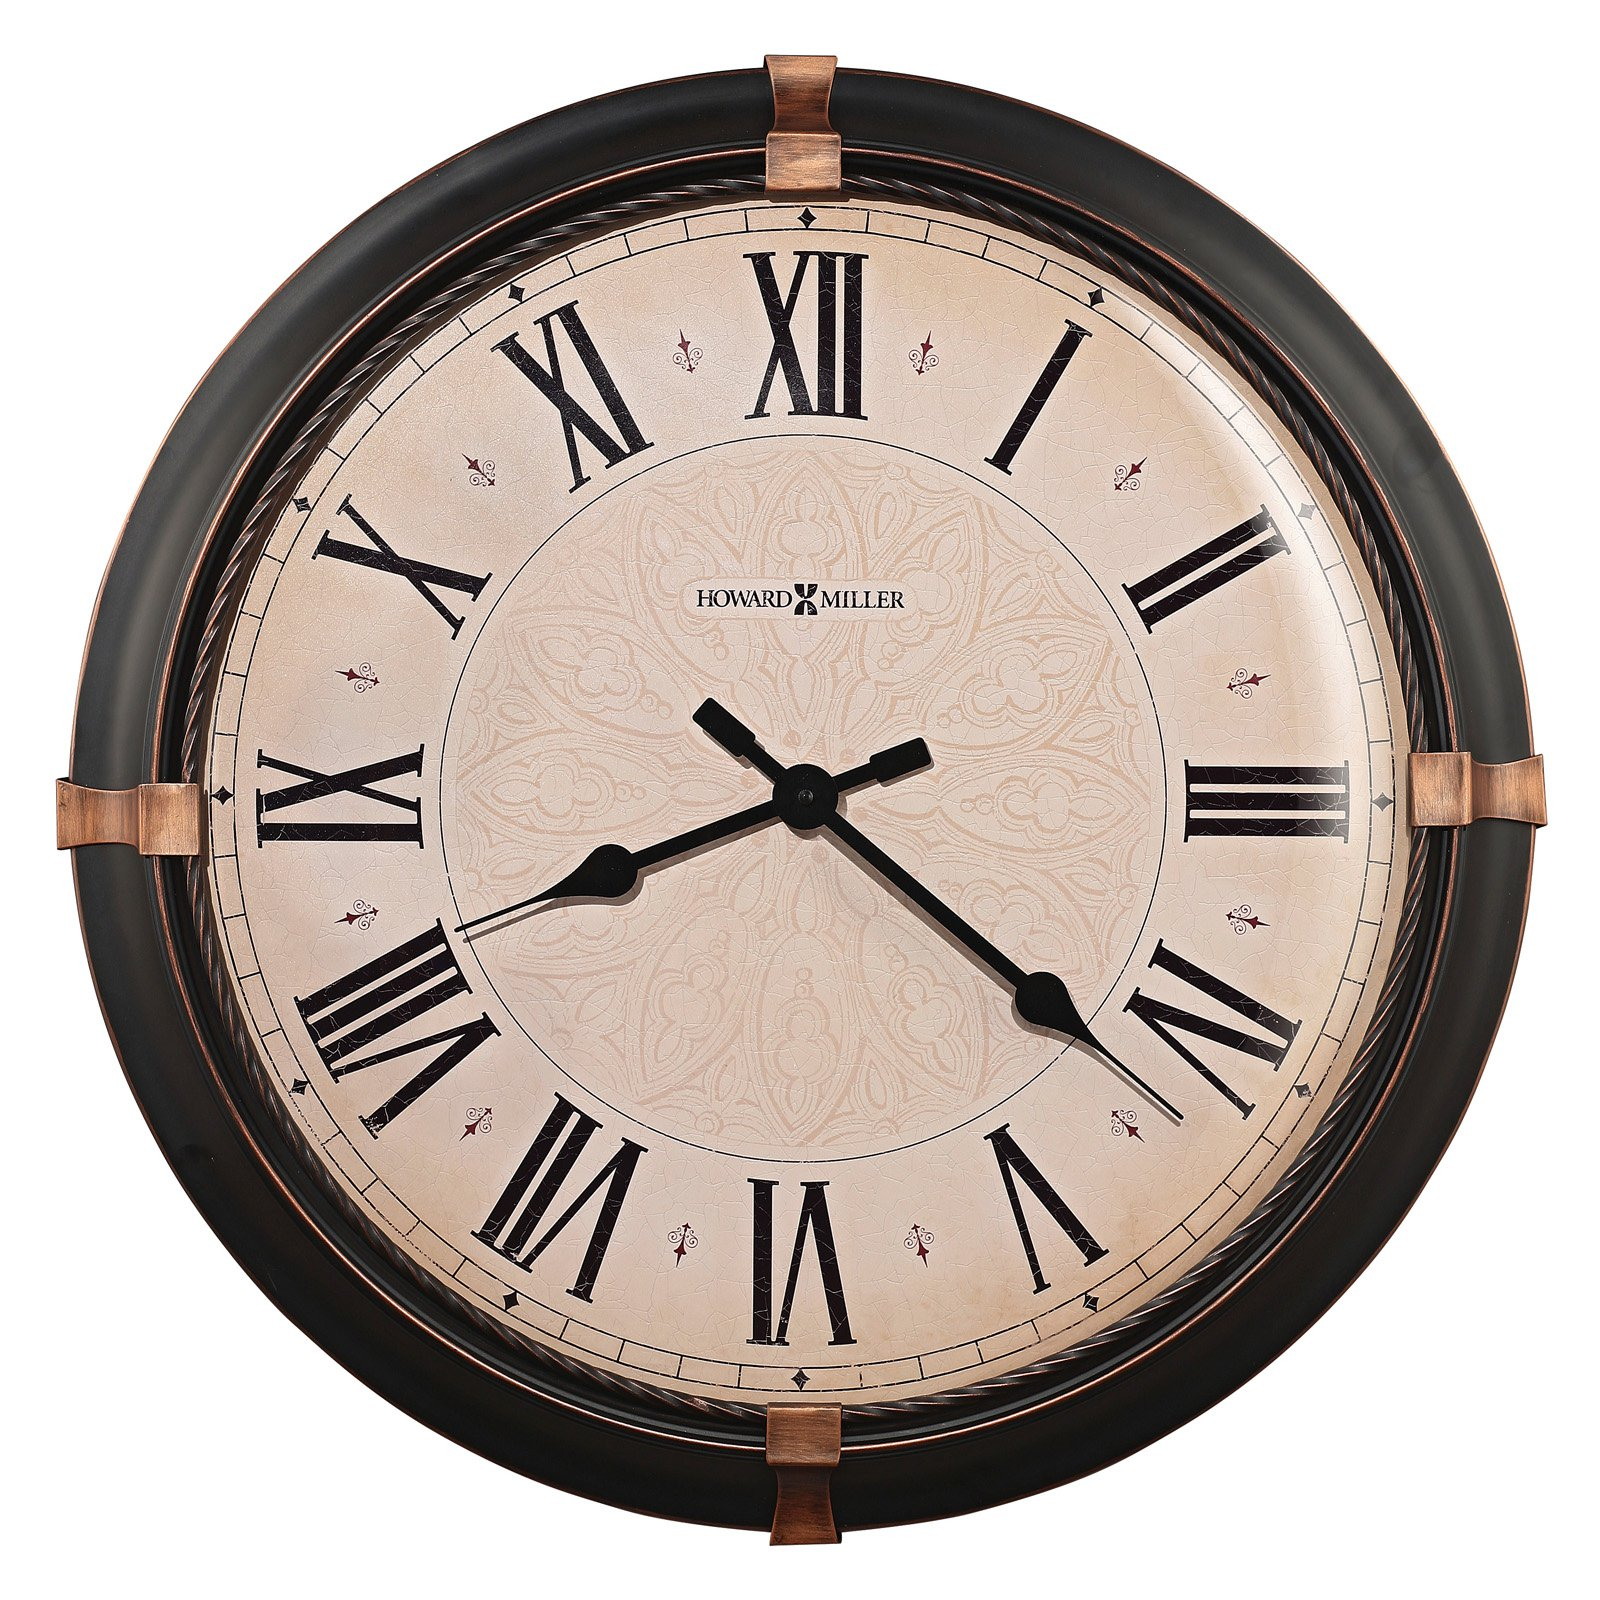 Howard Miller 625-498 Atwater 24 in. Wall Clock by Howard Miller